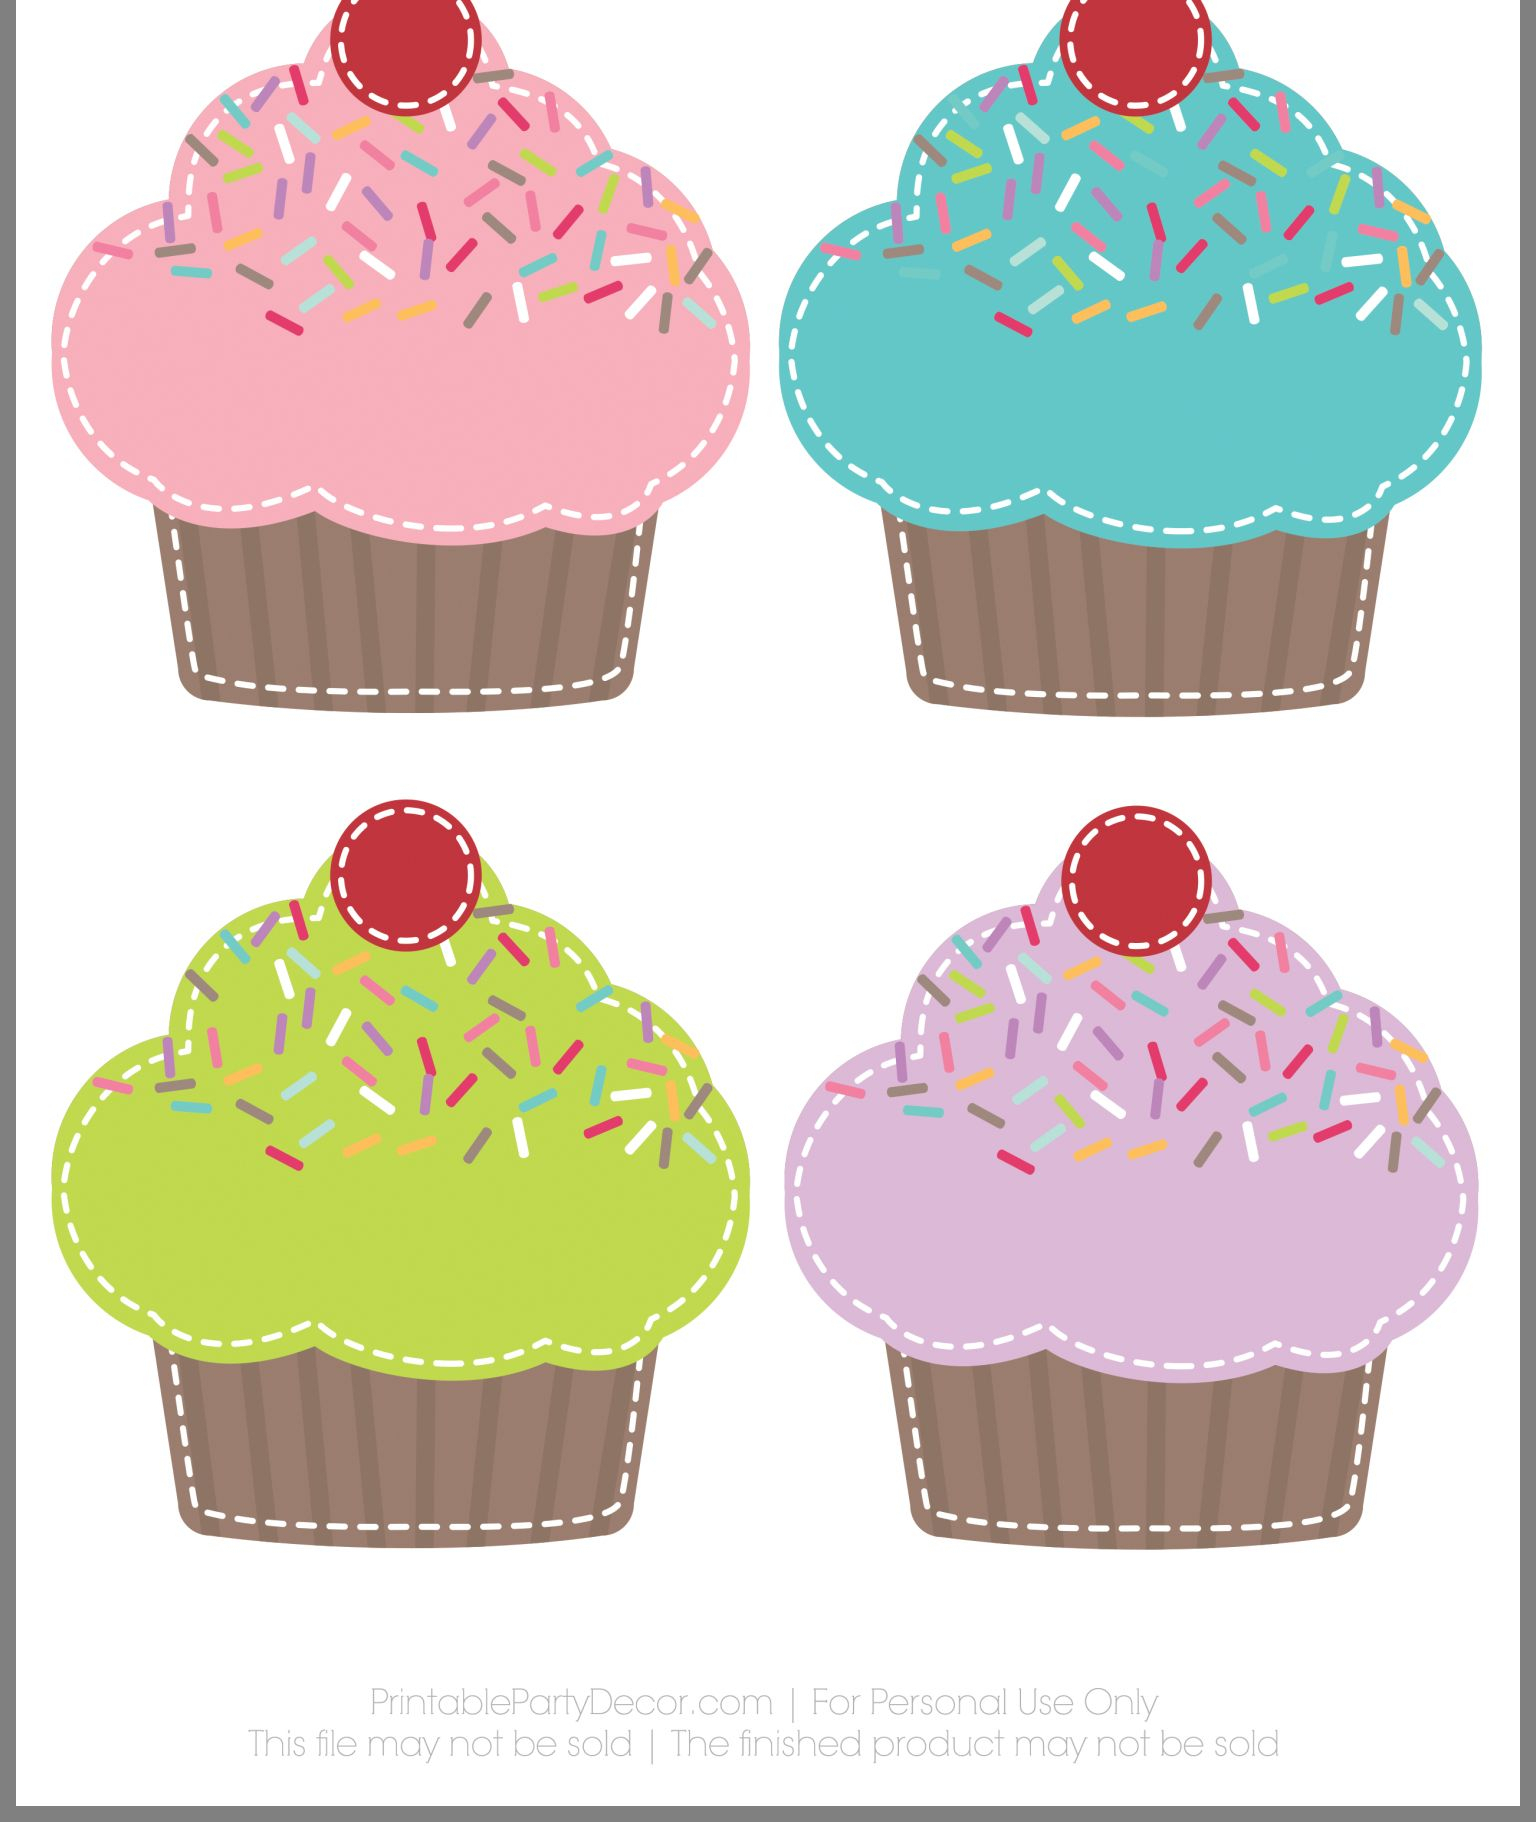 Birthday Cupcake Template  Yatay.horizonconsulting.co in Cupcake Birthday Chart